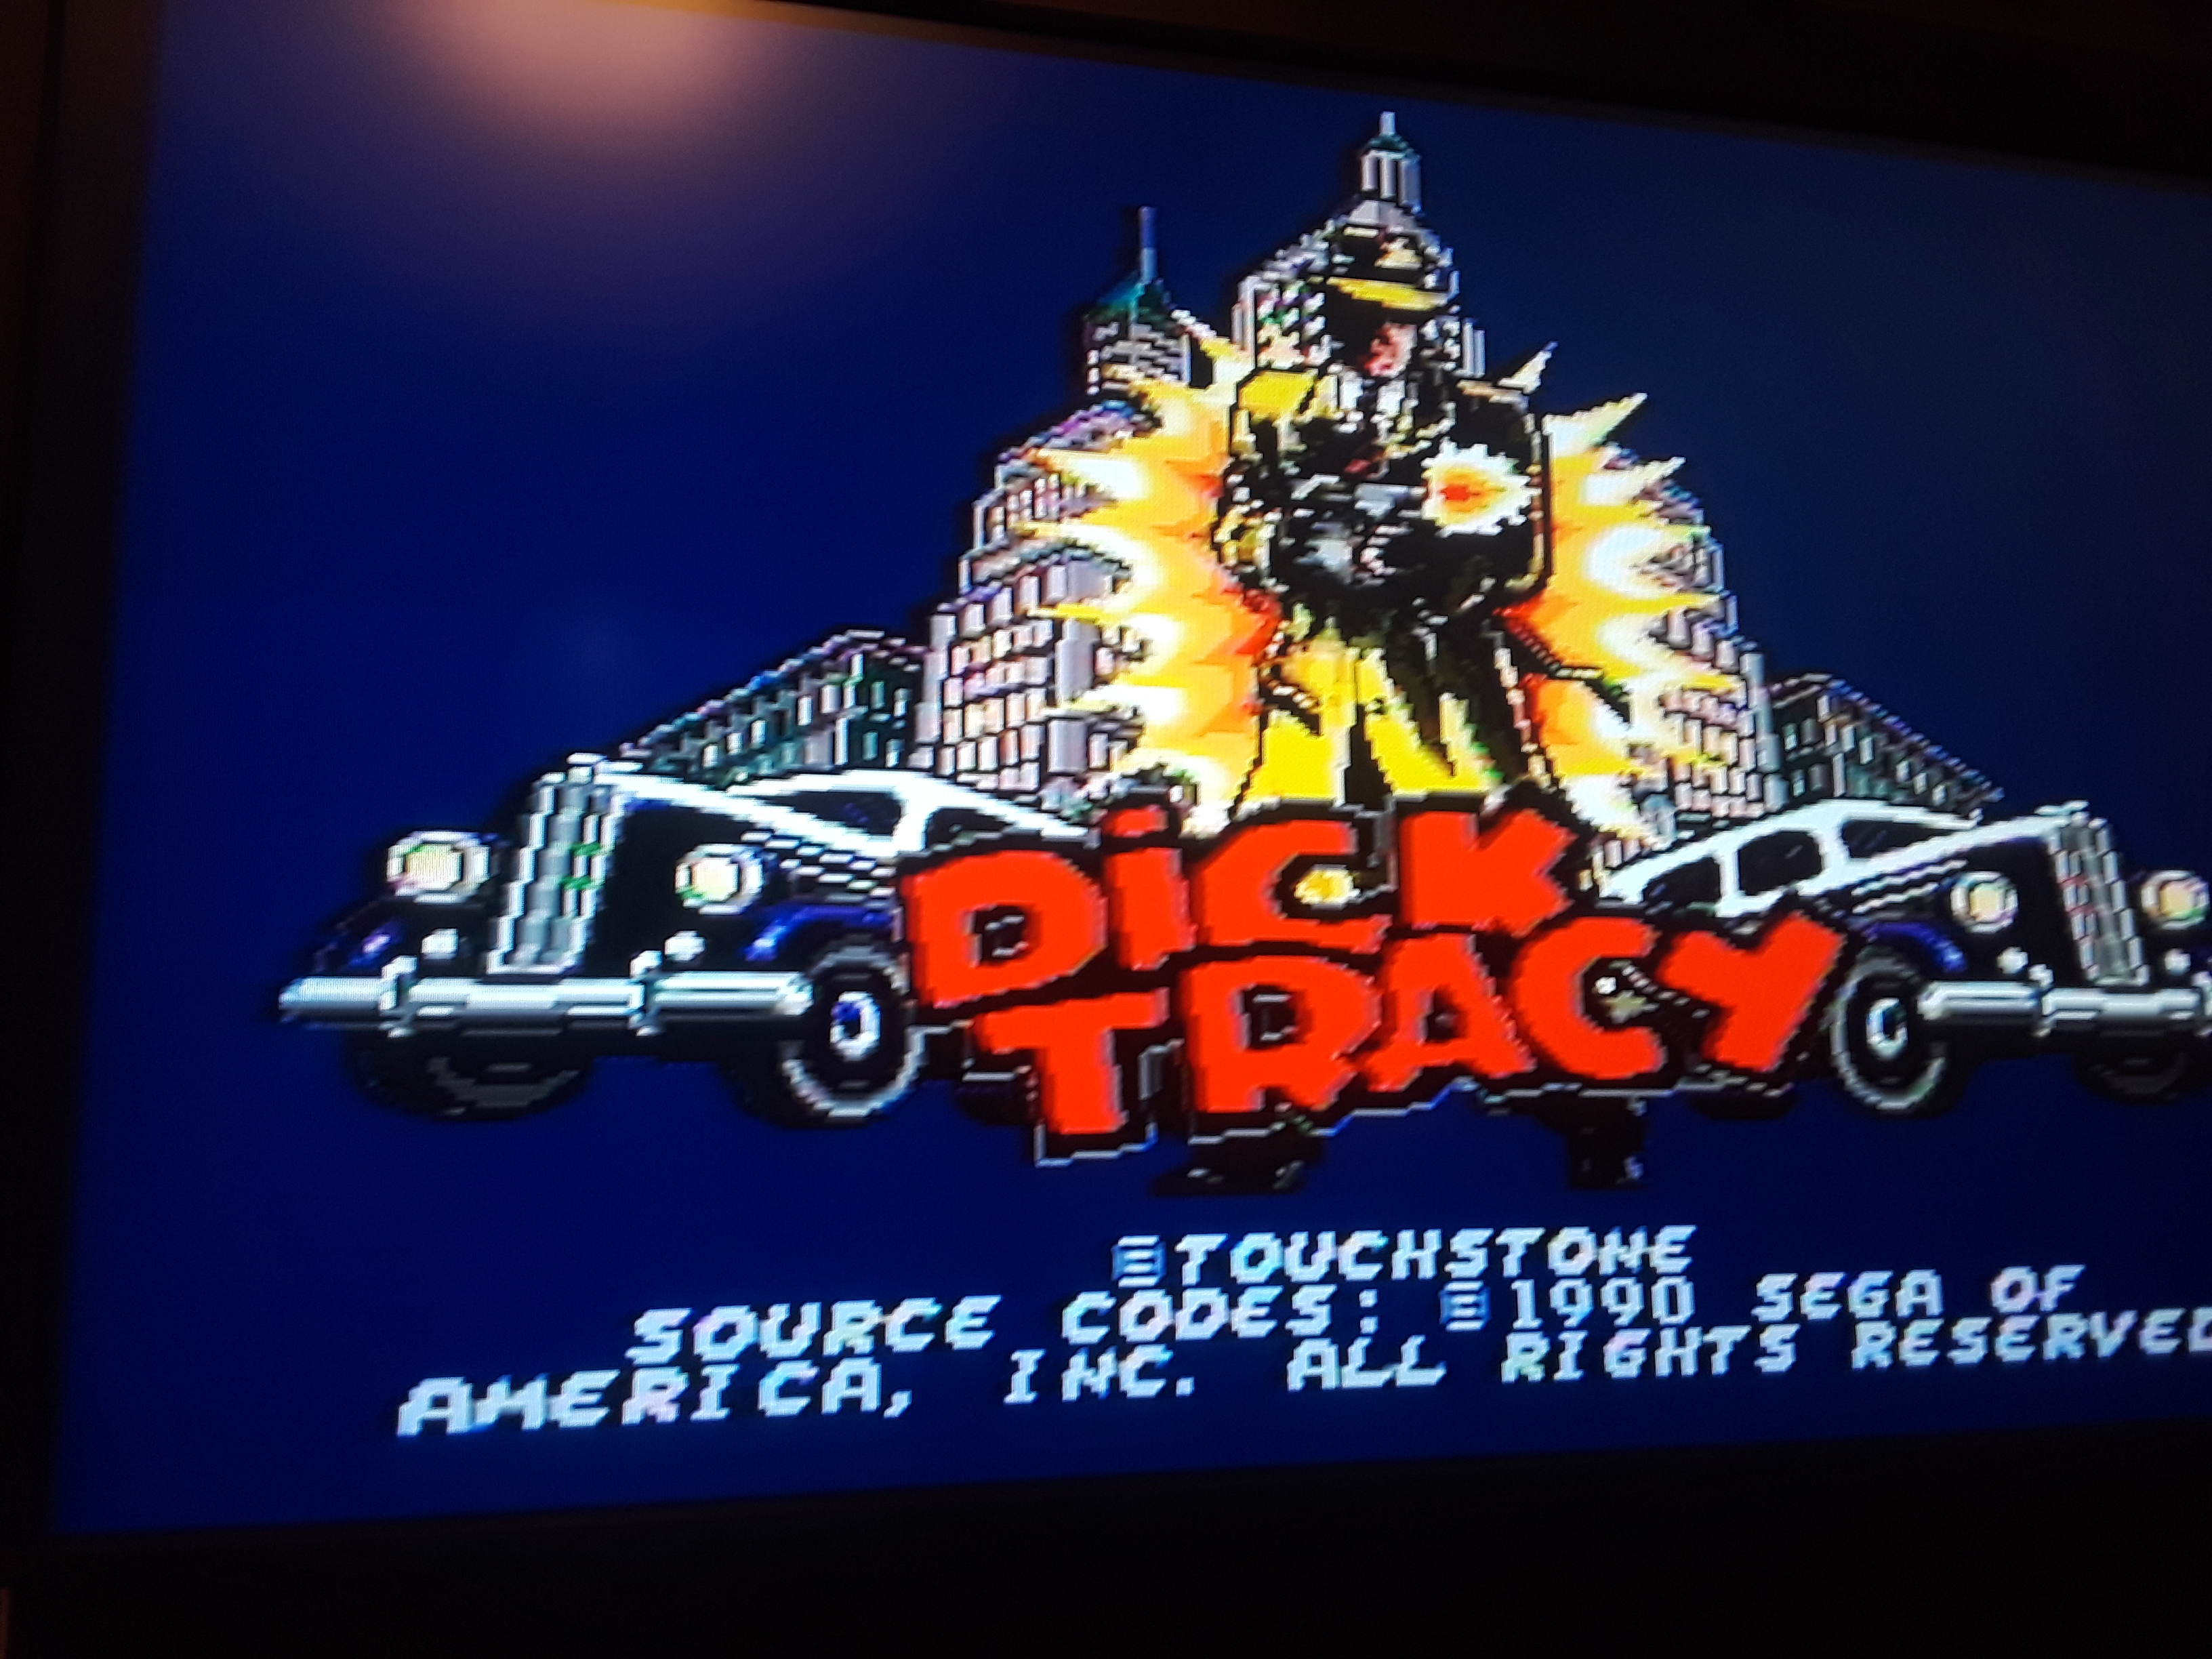 Dick Tracy [Easy] 30,200 points